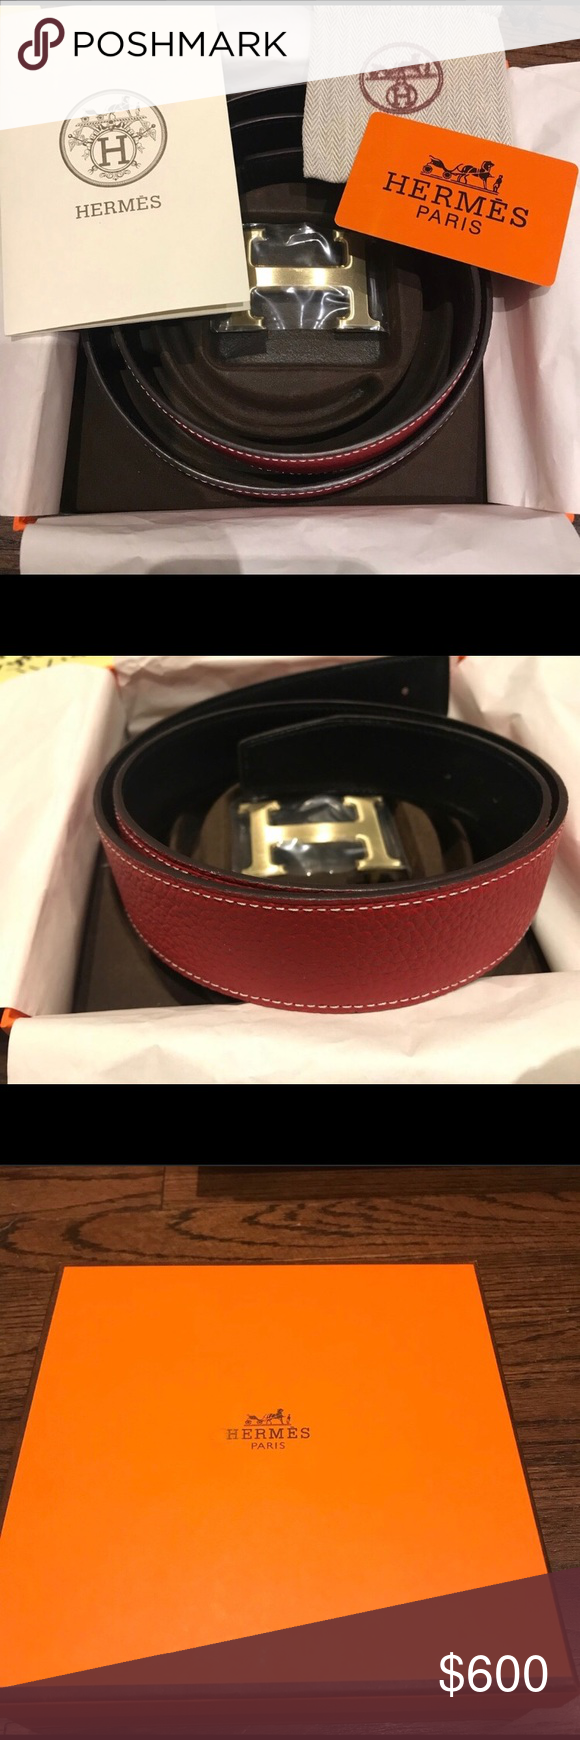 The Cannes luxury leather dog collar is the ultimate in